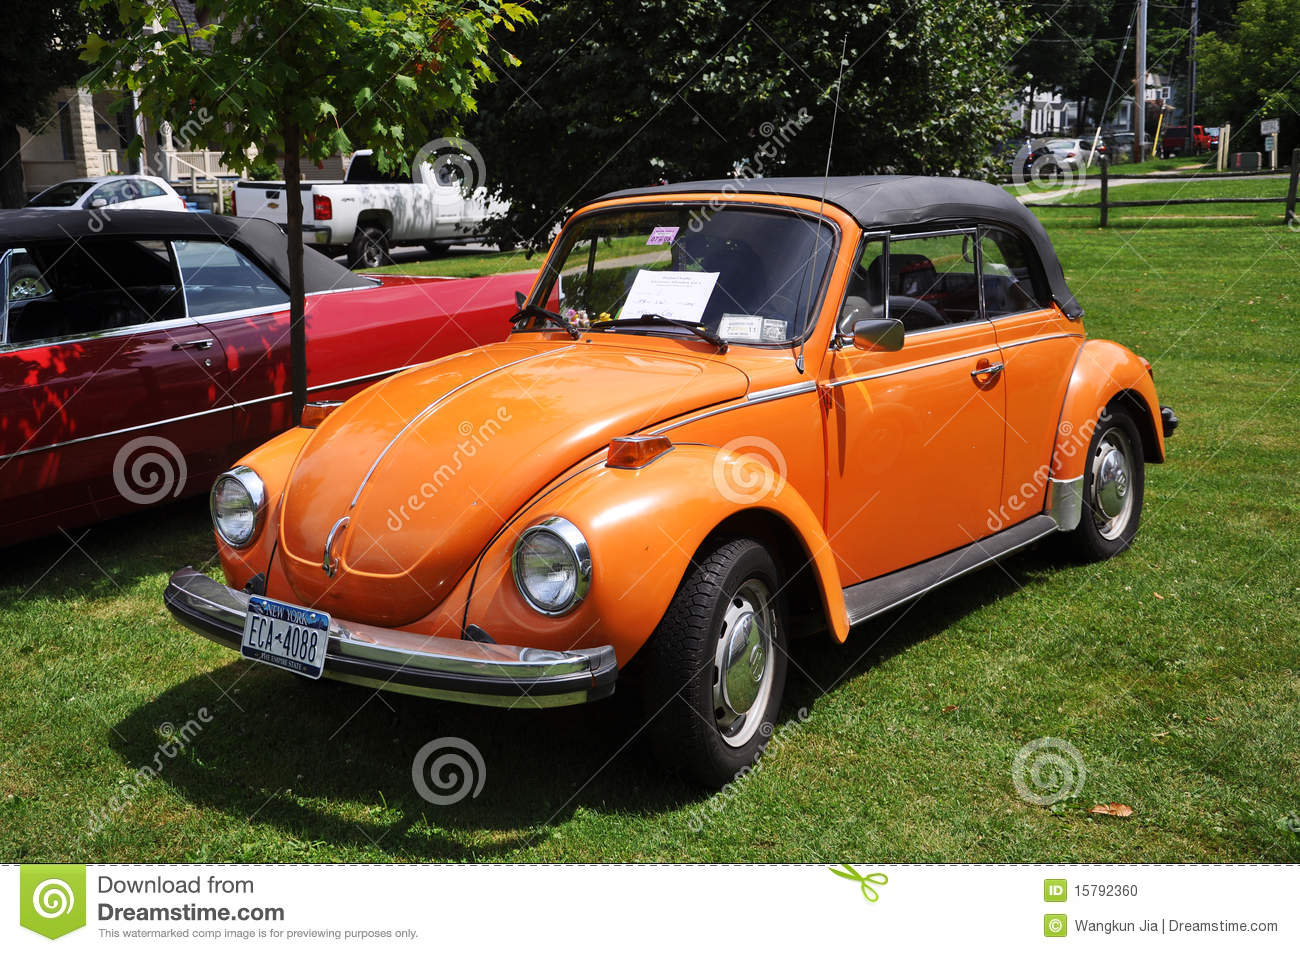 Volkswagen Beetle In Antique Car Show Editorial Image - Image of ...